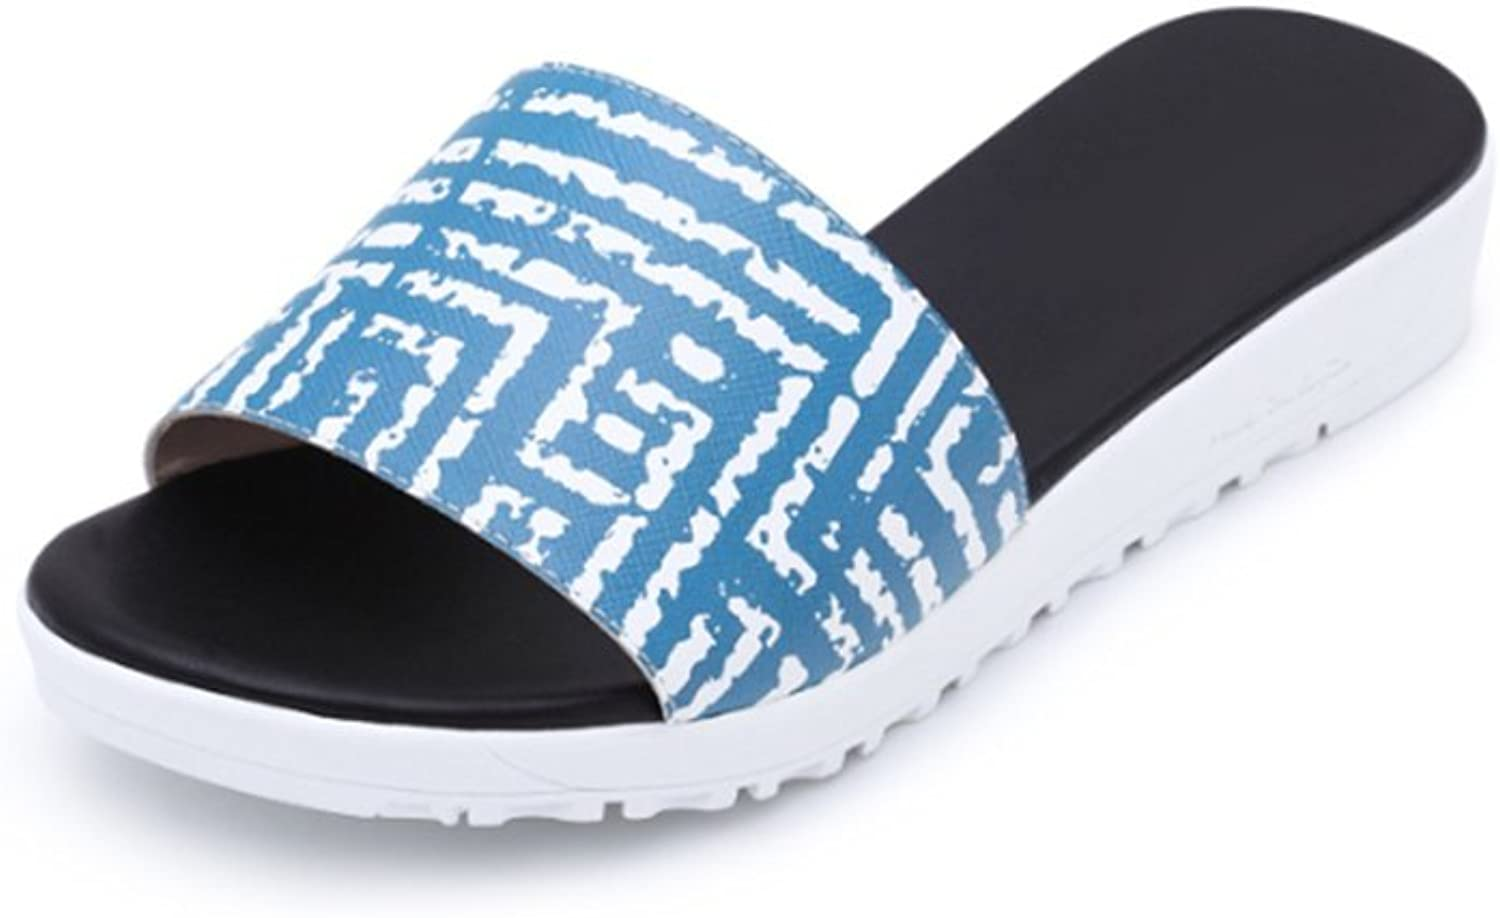 Weiwei Flat Sandals in The Summer,Print Toe Lined Slippers